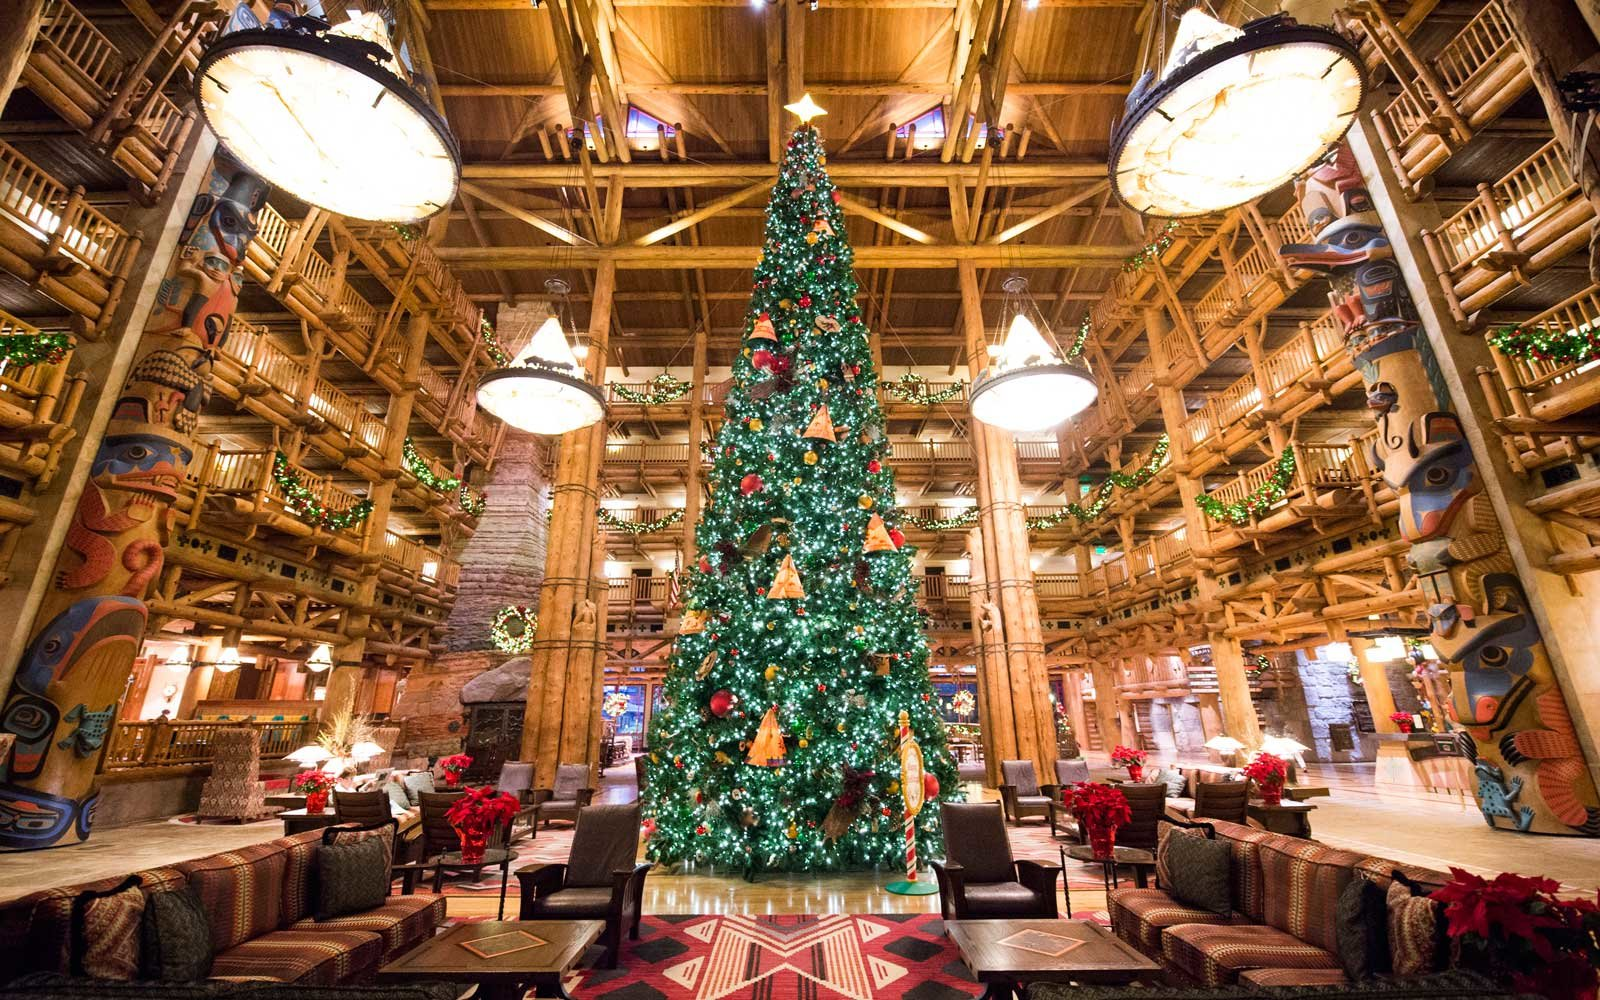 Disney World S Wilderness Lodge Is The Best Place To Spend Christmas At The Park Travel Leisure